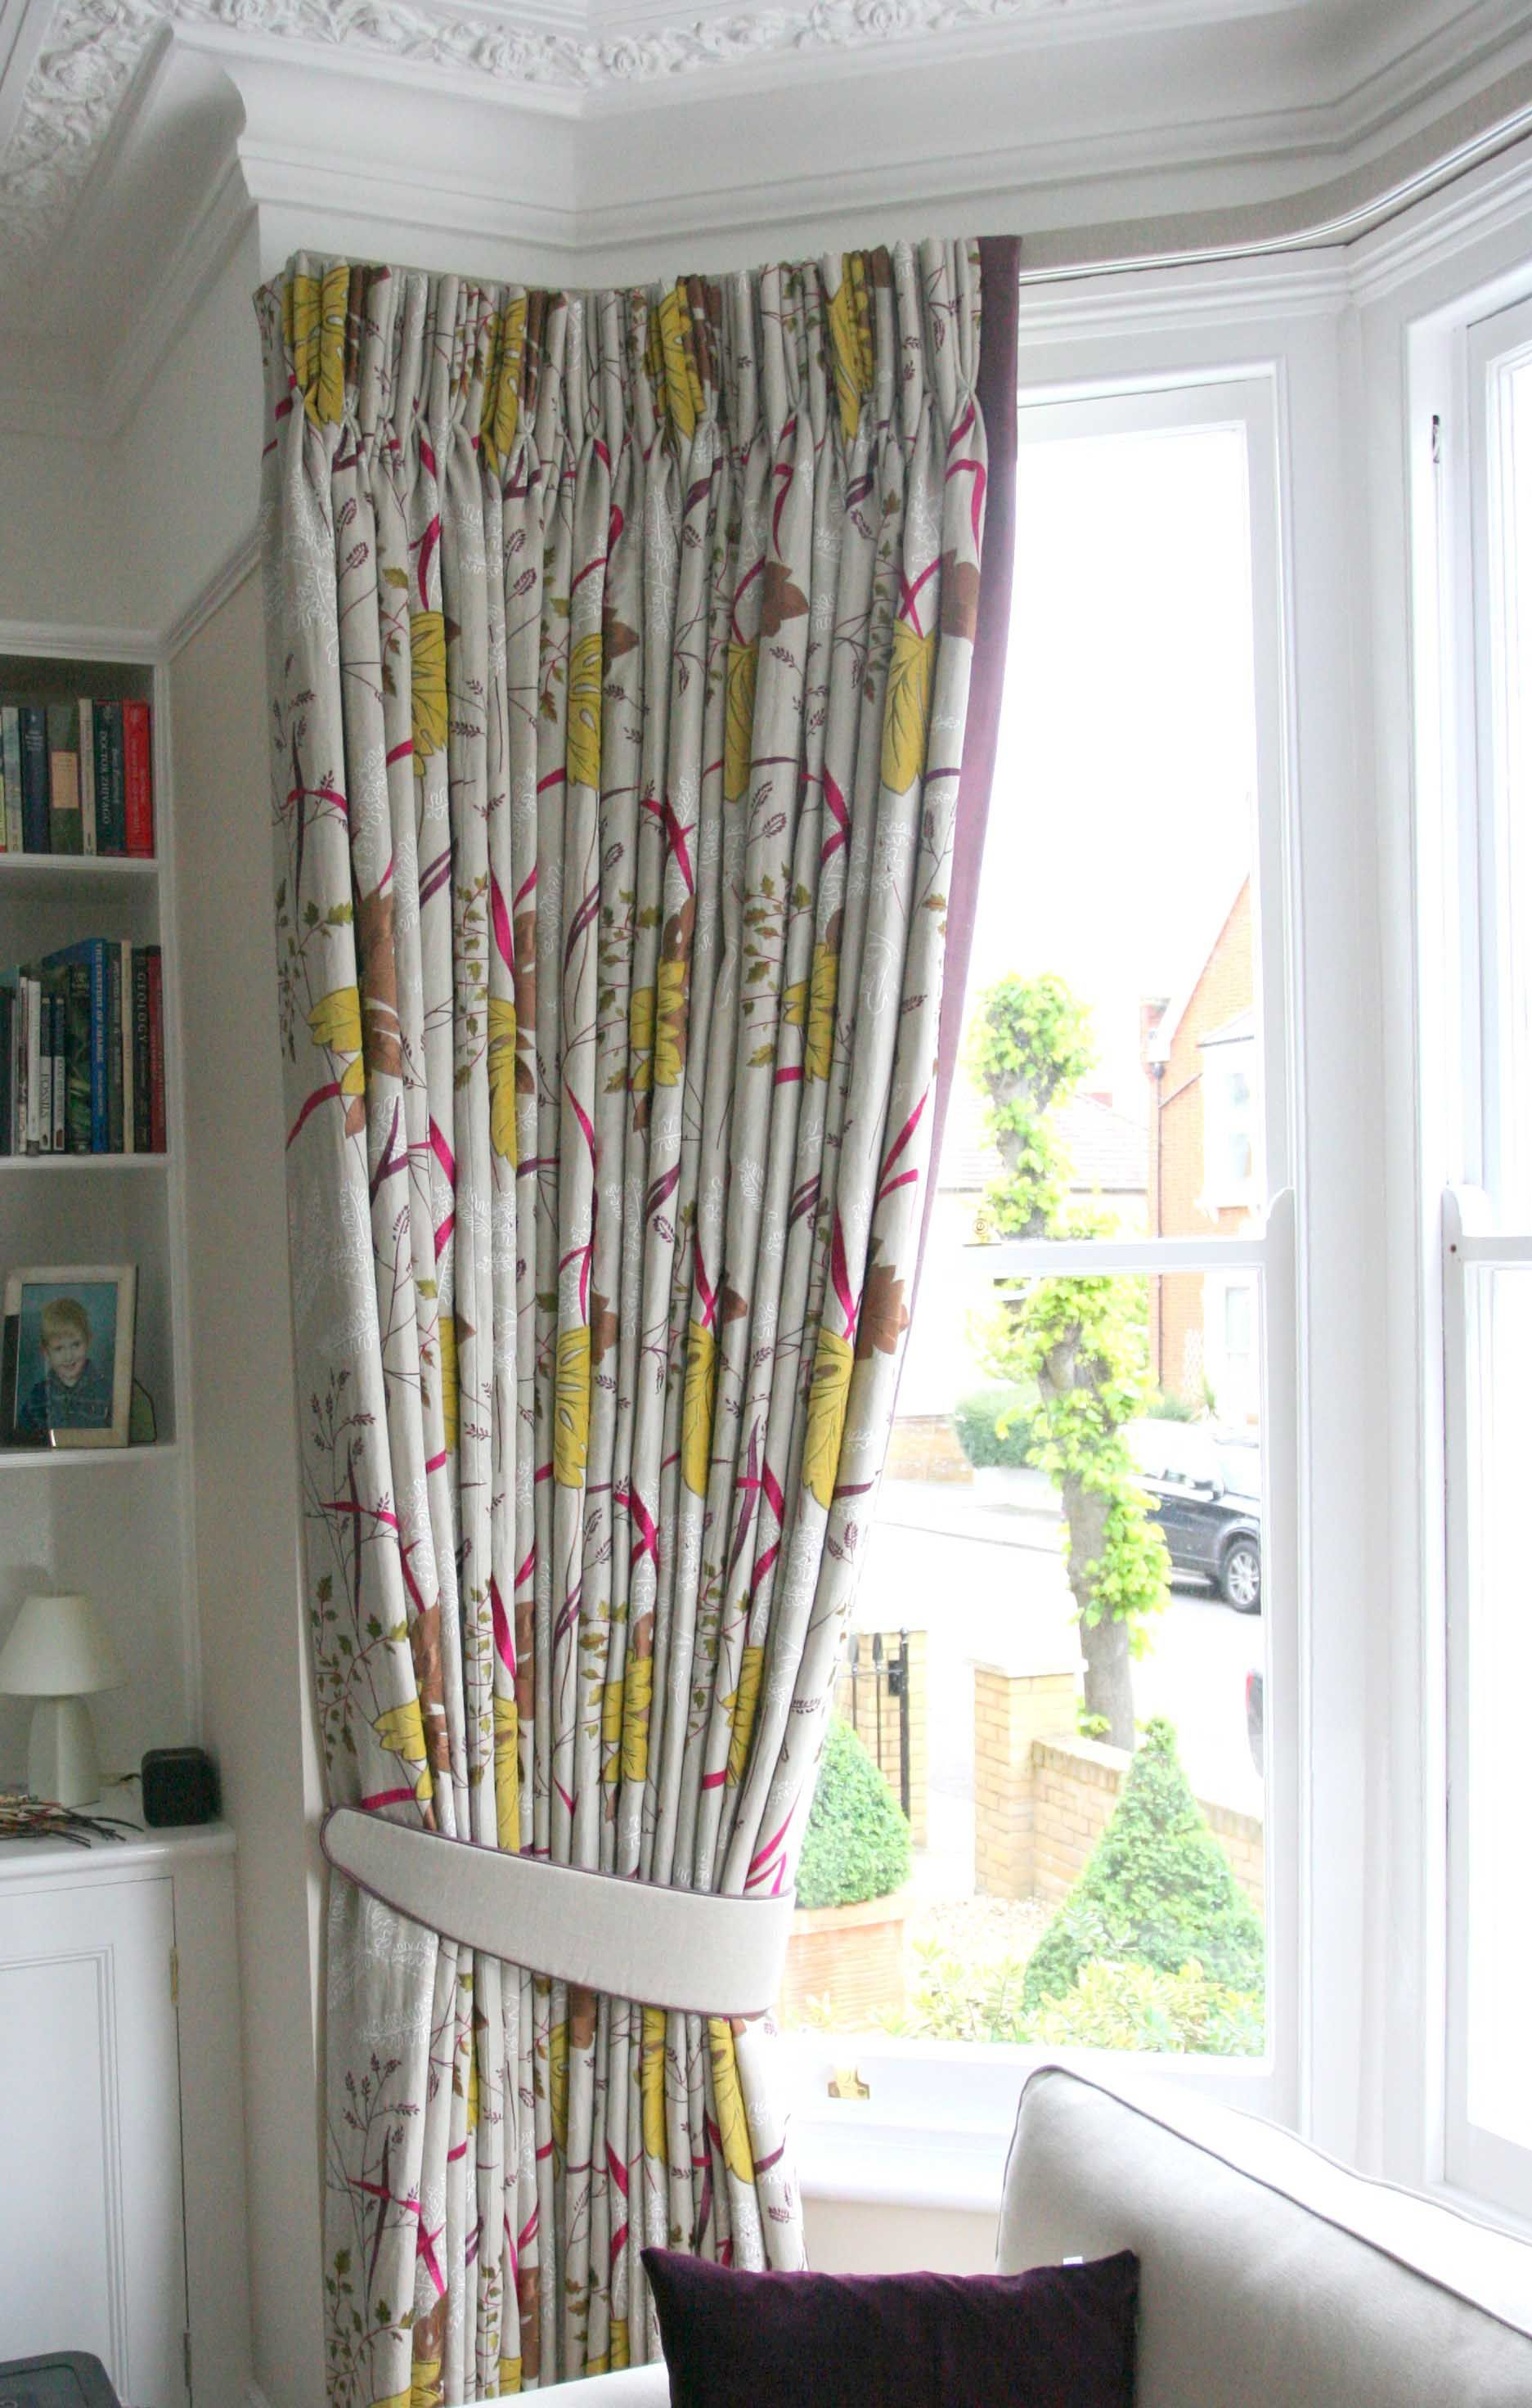 Inside house windows with curtains - Bay Window Embroidered Linen Curtains Nina Campbell Syvana Arboretum With Triple Pinch Pleats